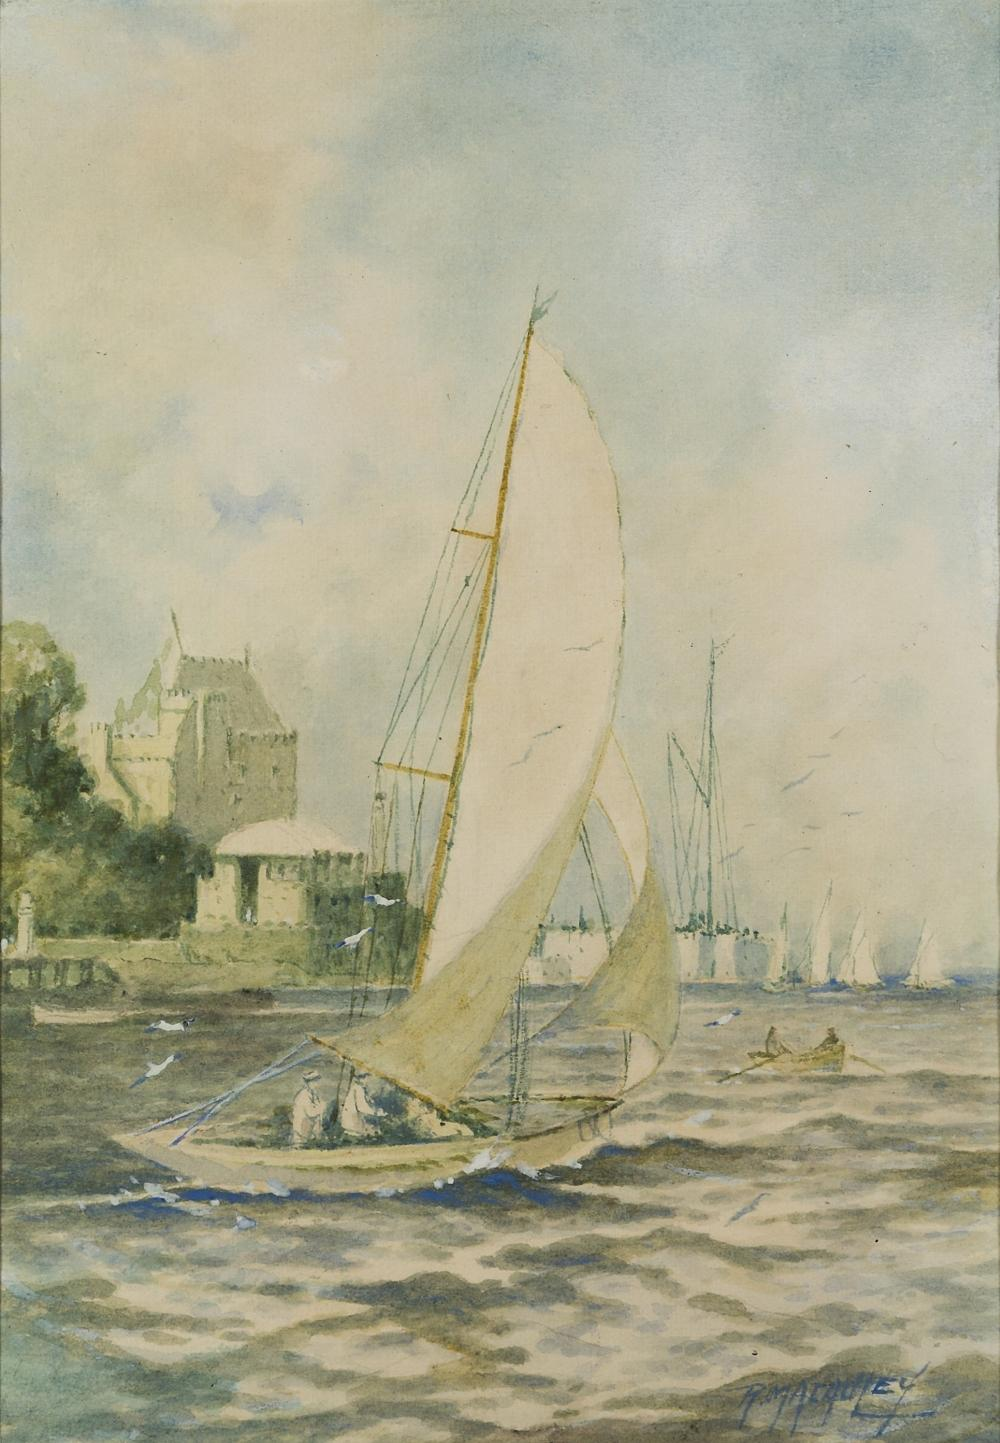 R. MACAULEY (BRITISH, 20TH CENTURY) : Yachts racing off Cowes Castle; Yachts racing off Ryde, Isle of Wight